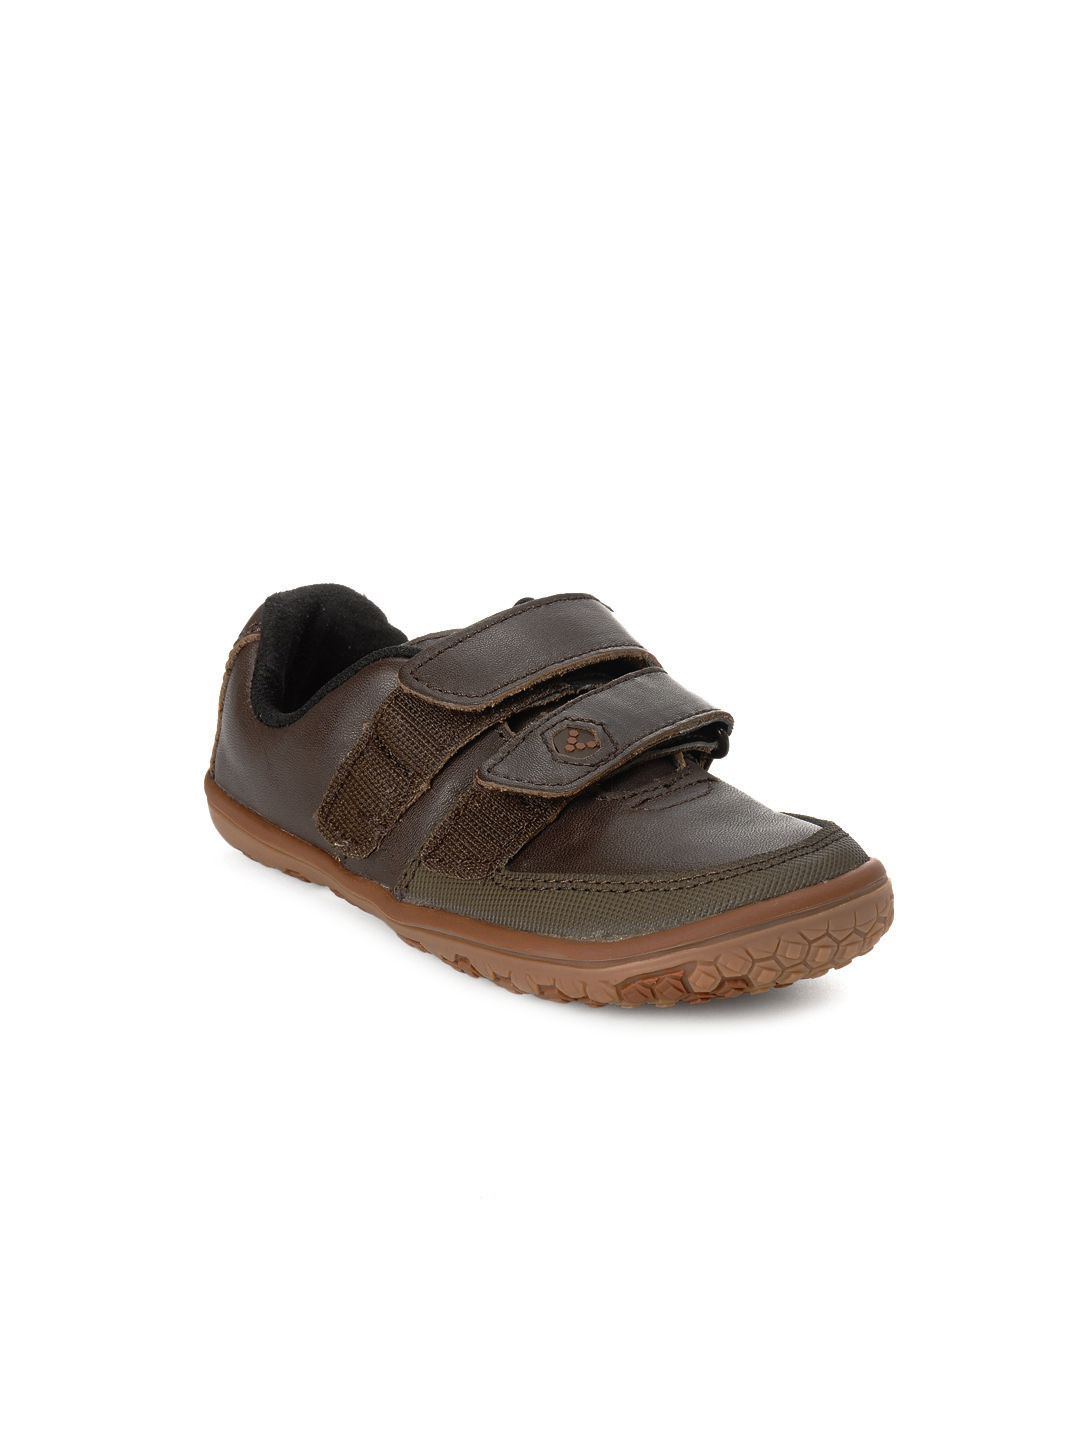 VIVOBAREFOOT Kids Unisex Rooty Brown Shoes